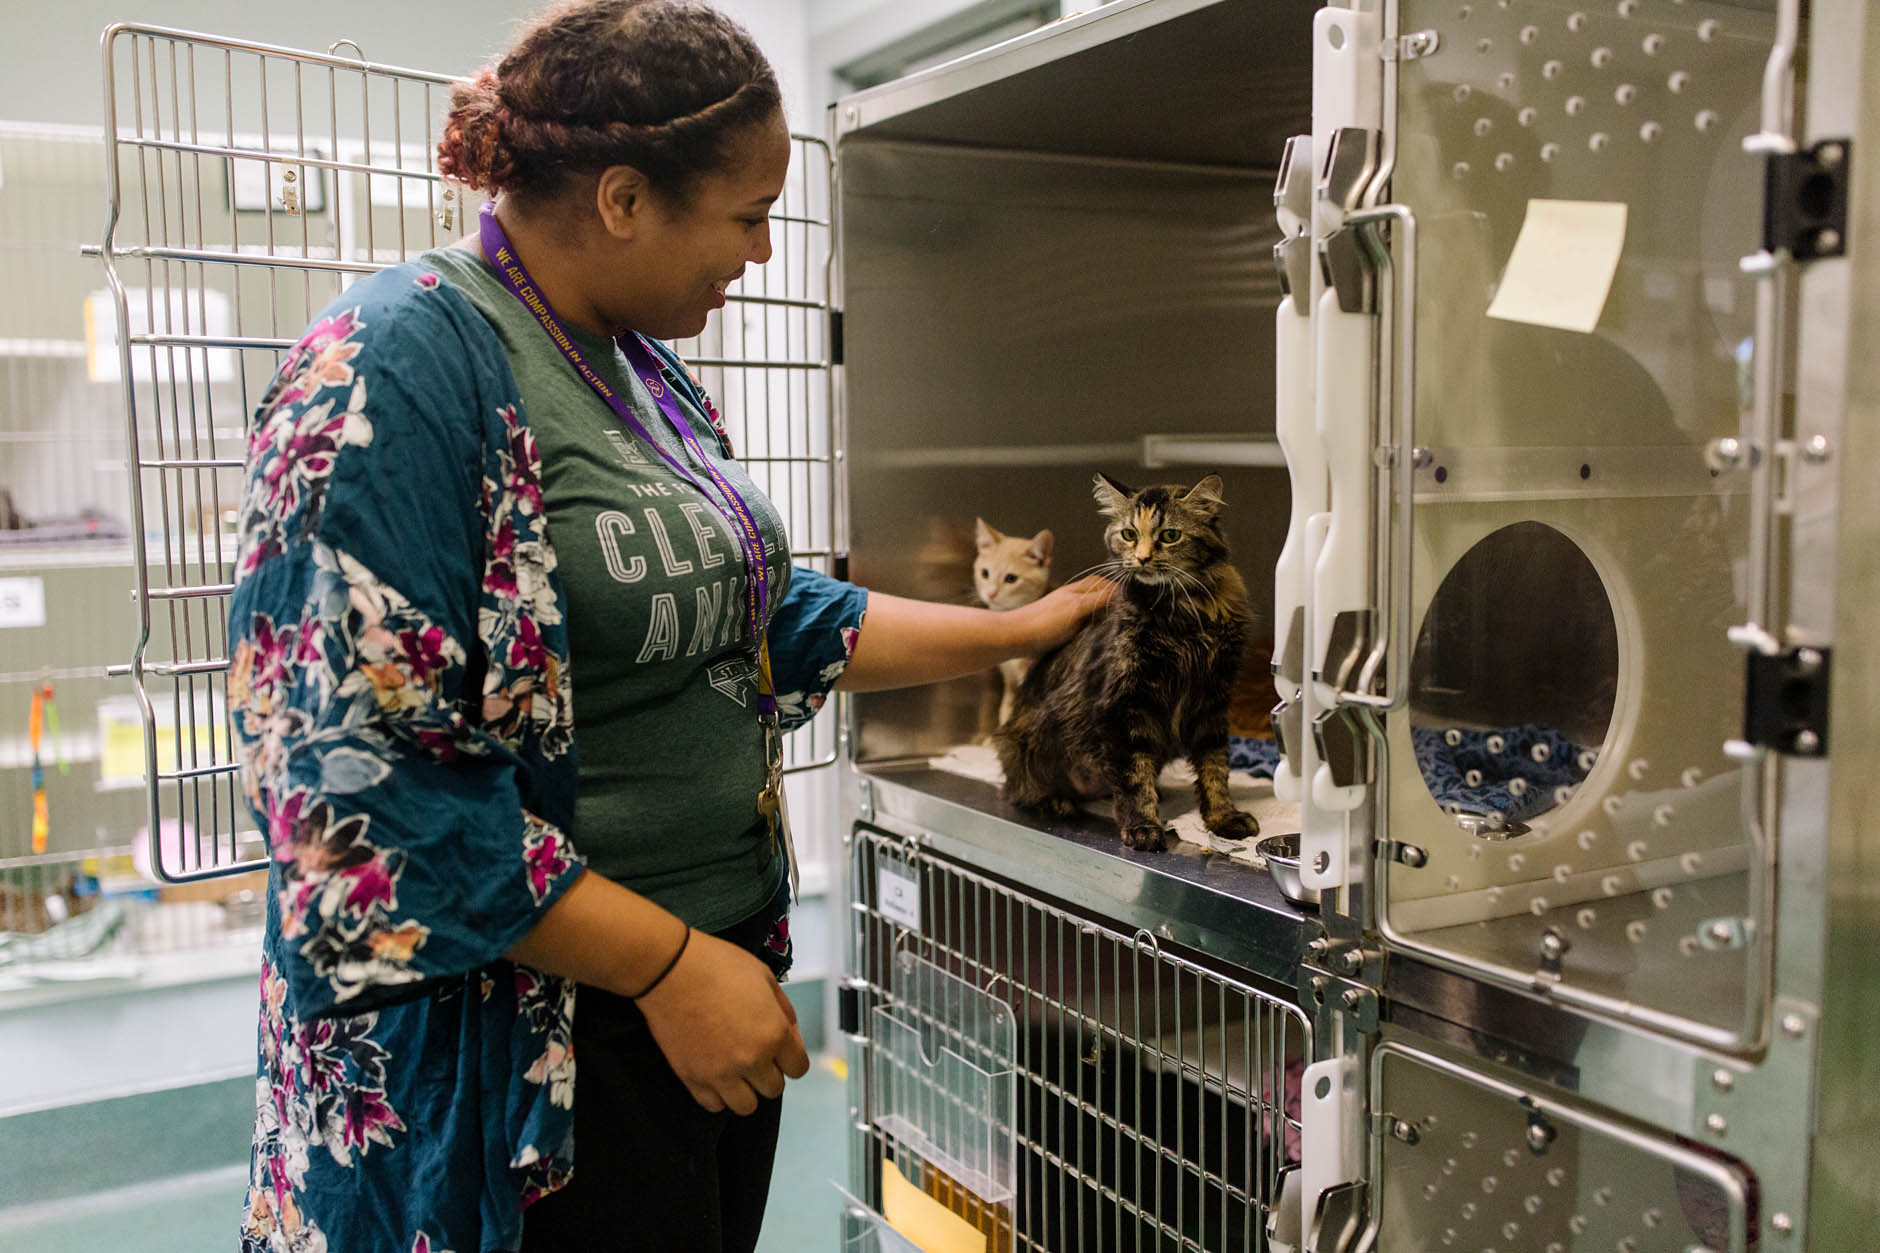 Your Neighborhood: Cleveland Animal Protective League